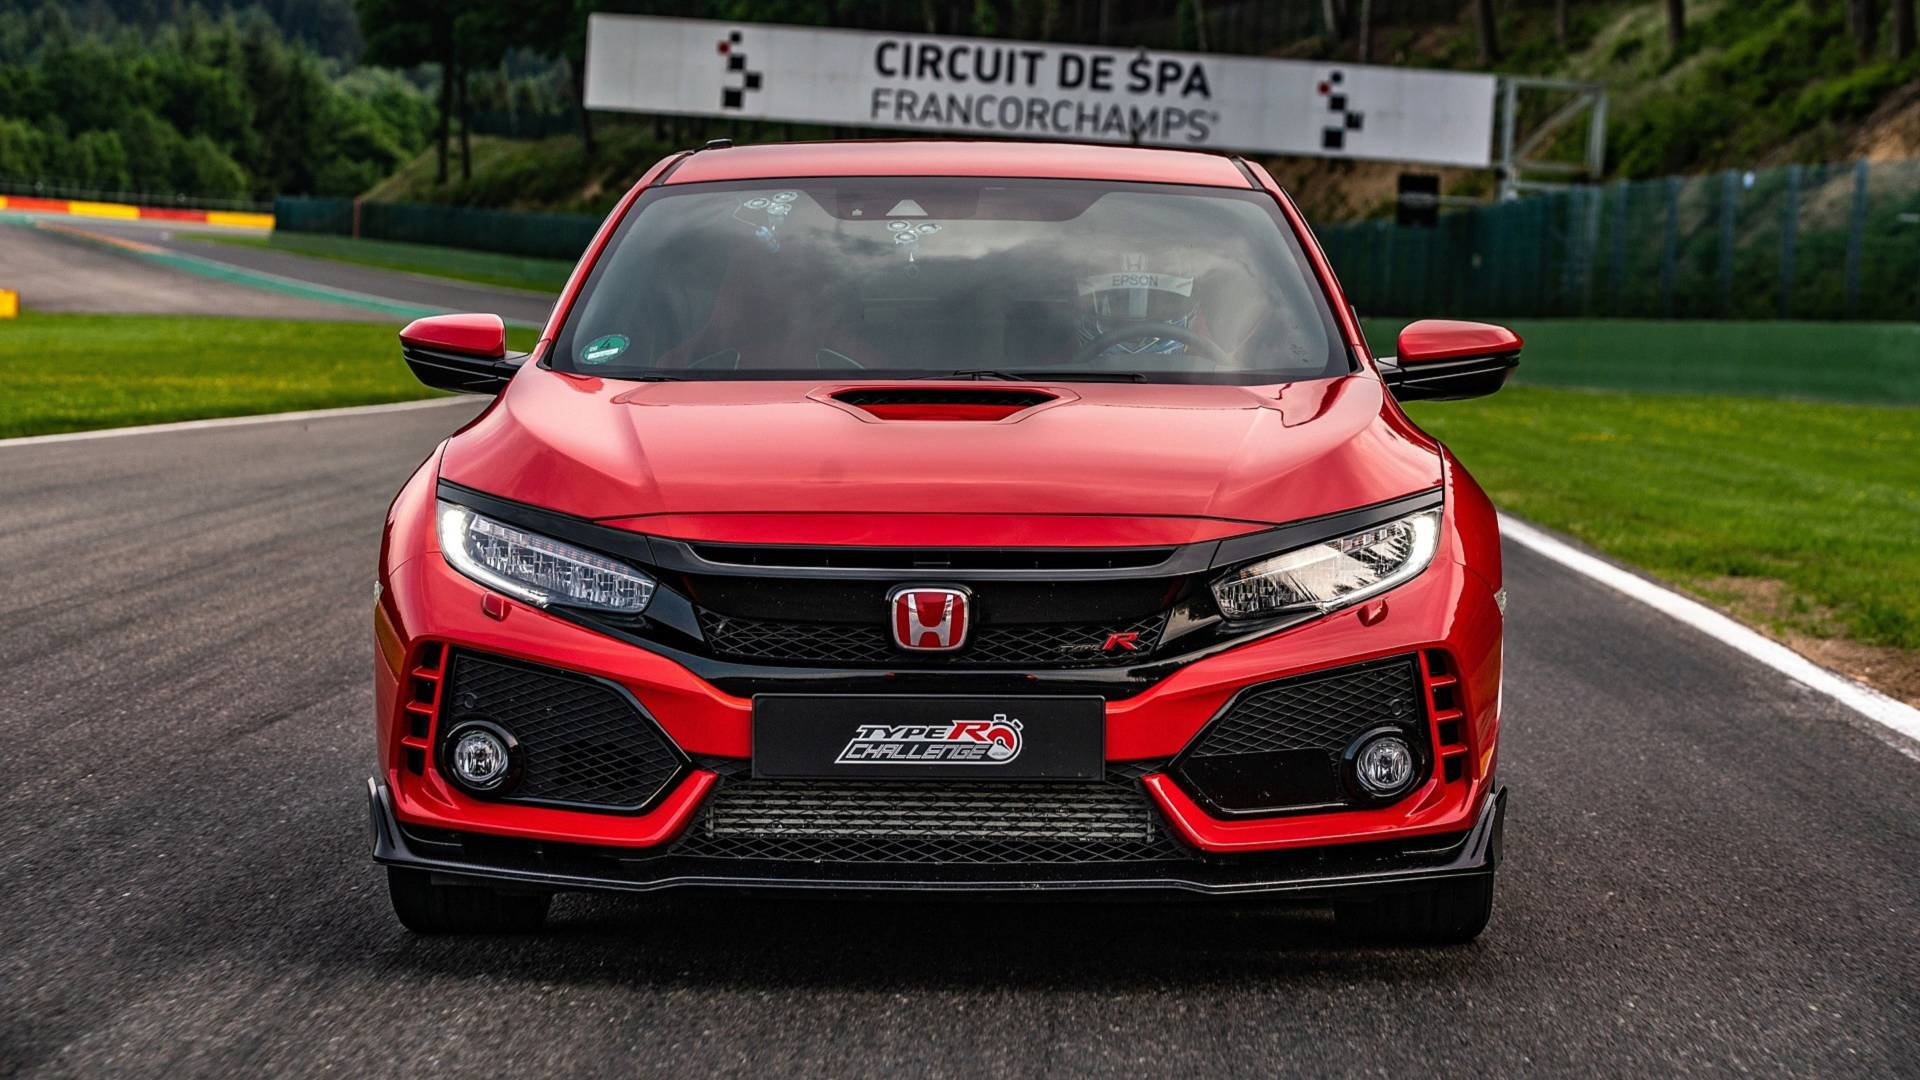 honda-civic-type-r-spa-francorchamps (3).jpg